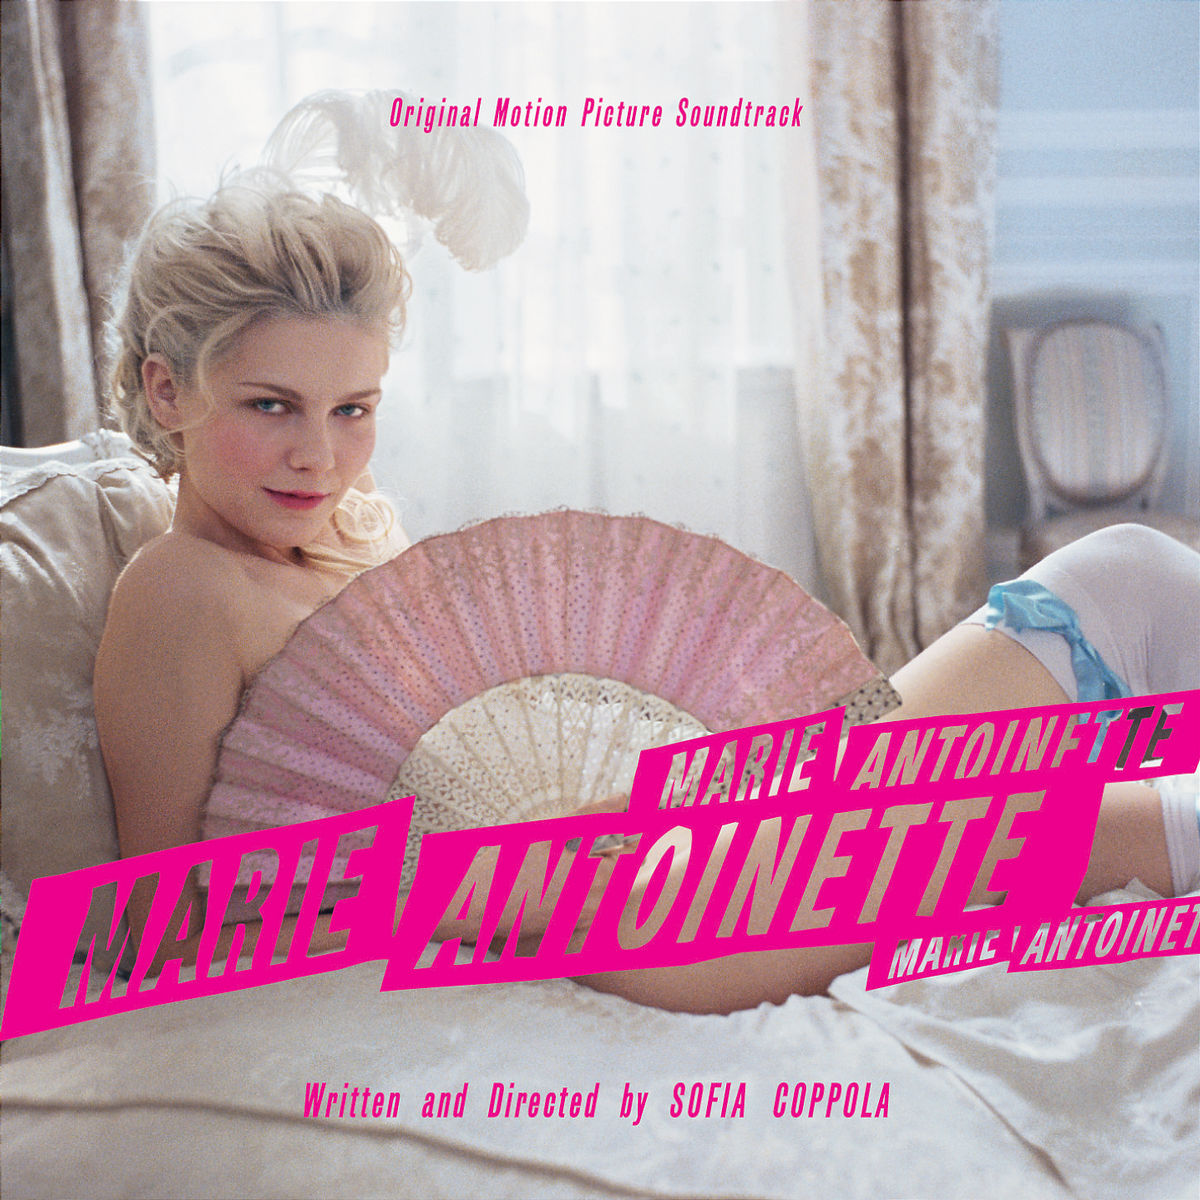 marie antoinette The 100 Greatest Movie Soundtracks of All Time